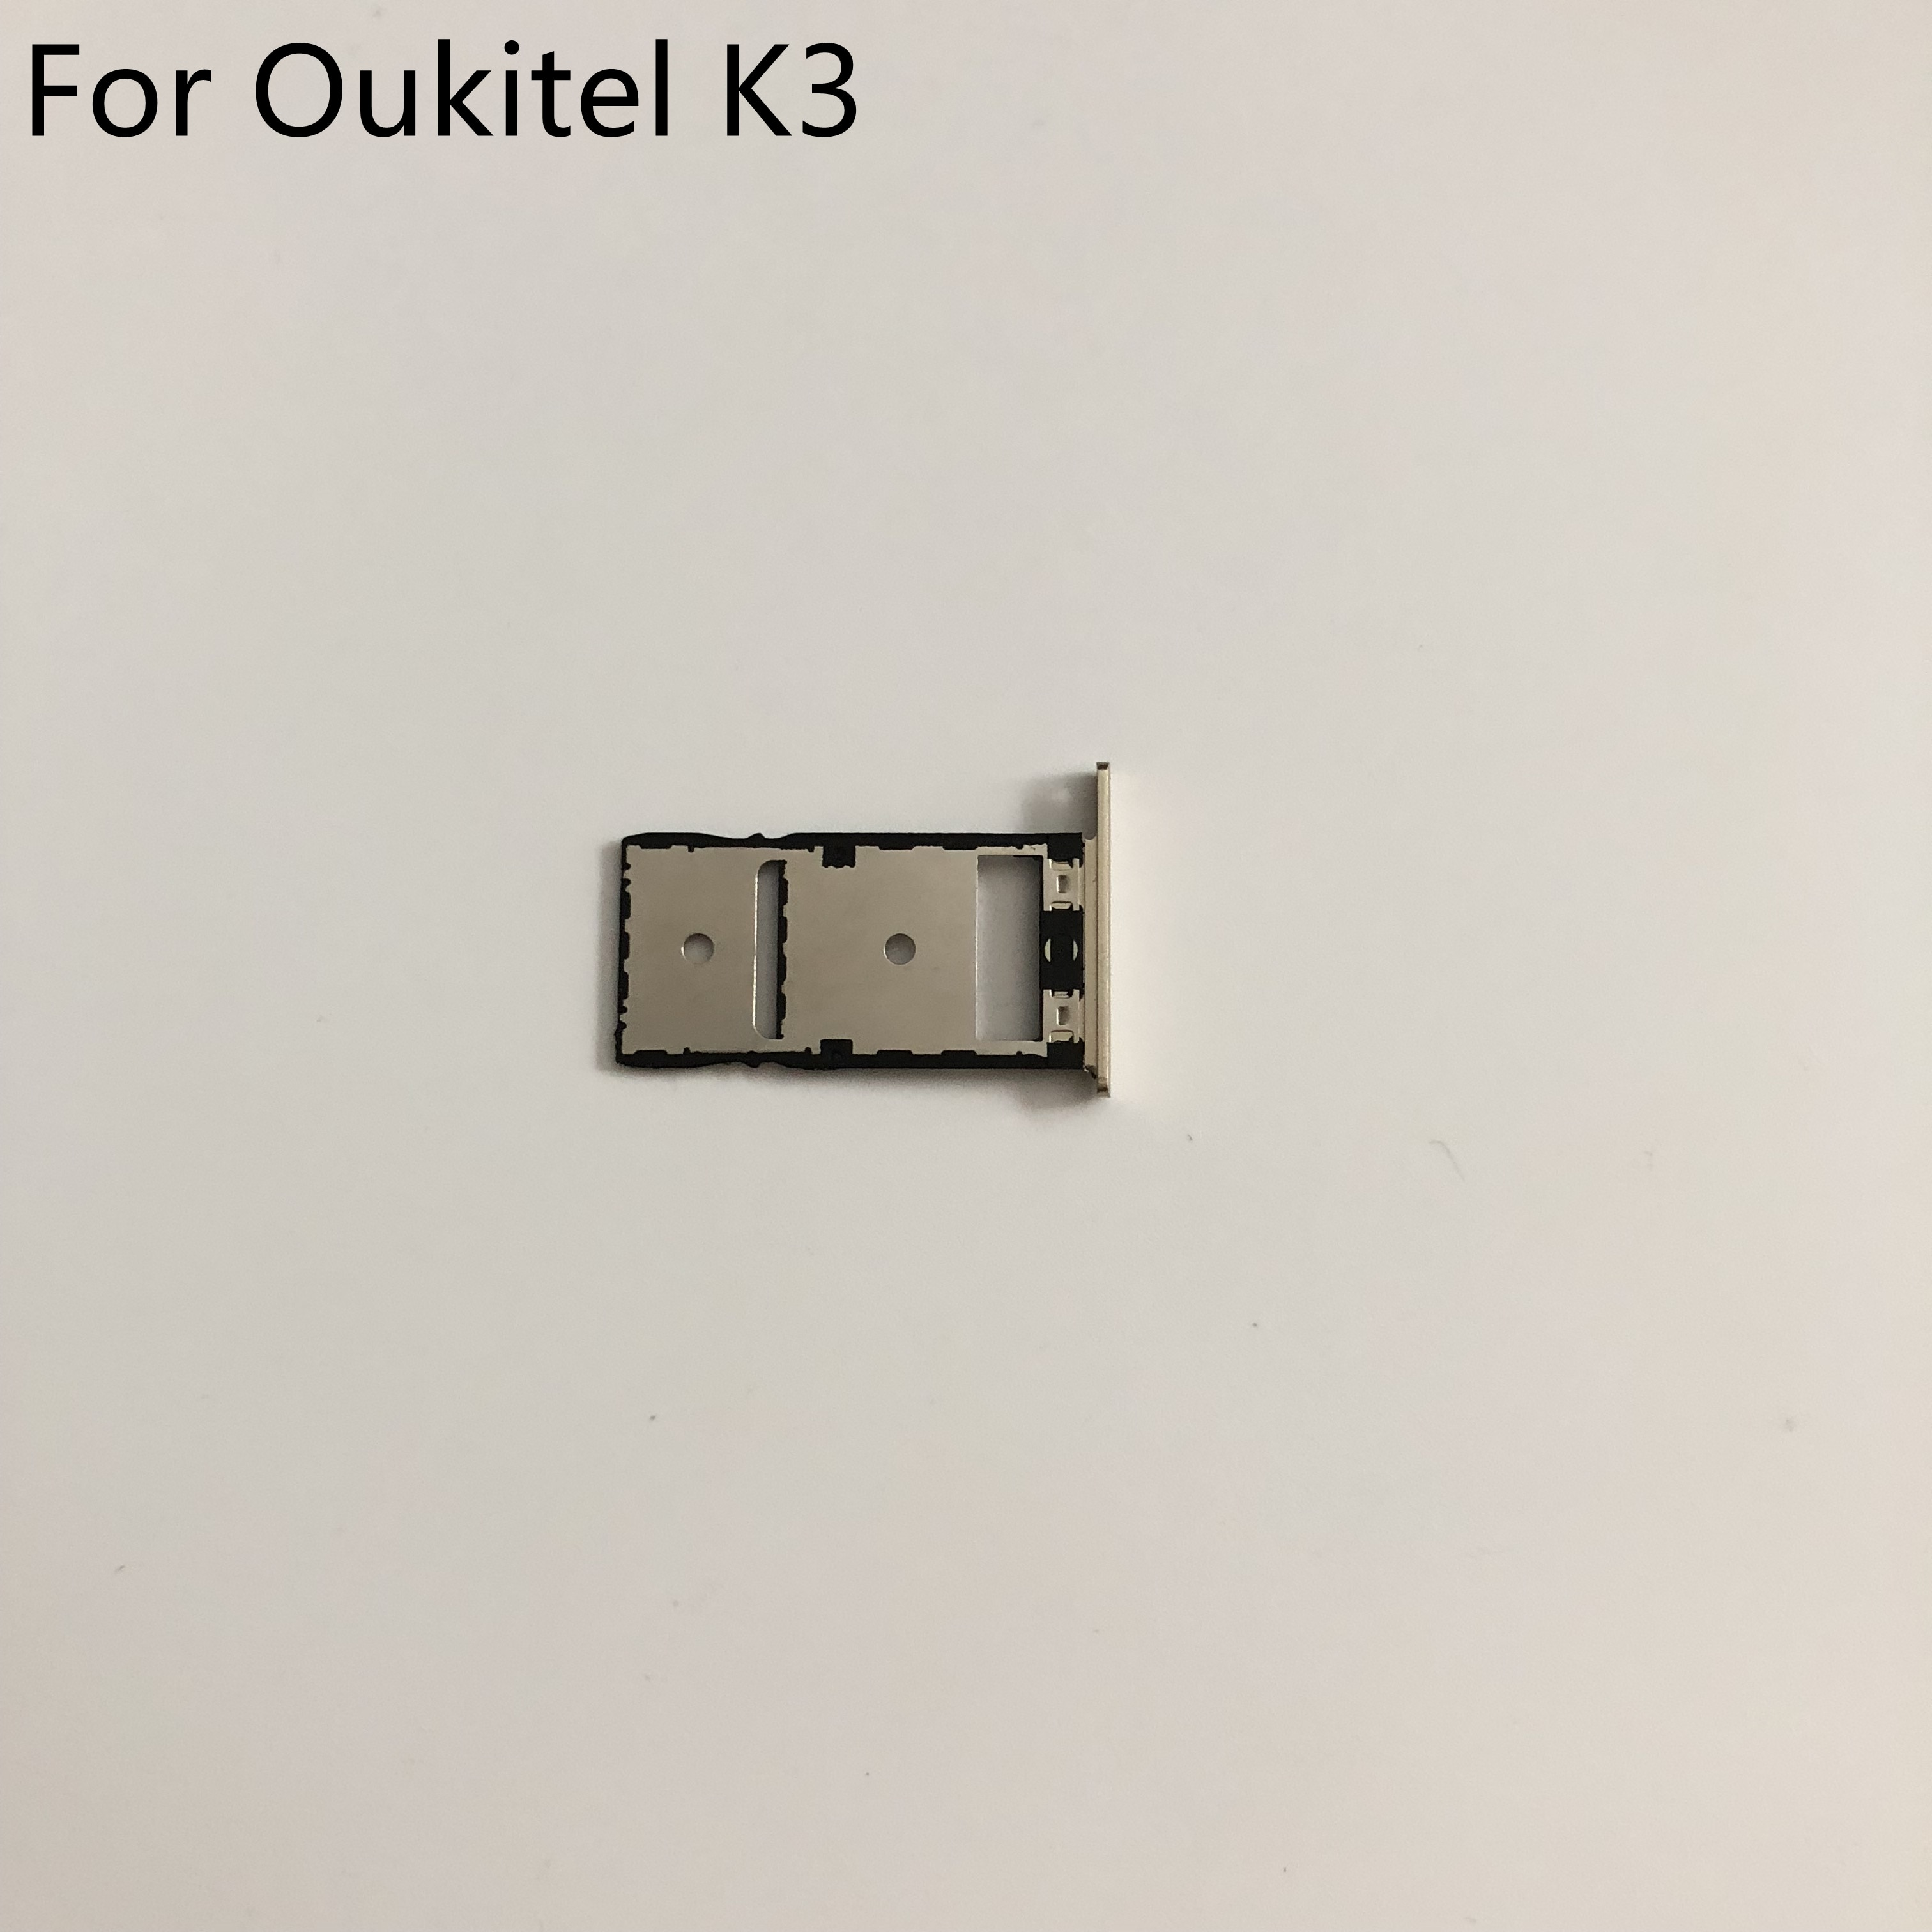 Фото - New Sim Card Holder Tray Card Slot For Oukitel K3 MT6750T Octa Core 5.5 inch FHD 1920x1080 + Tracking Number new sim card holder tray card slot replacement for oukitel k6000 plus mtk6750t octa core 5 5 fhd 1920x1080